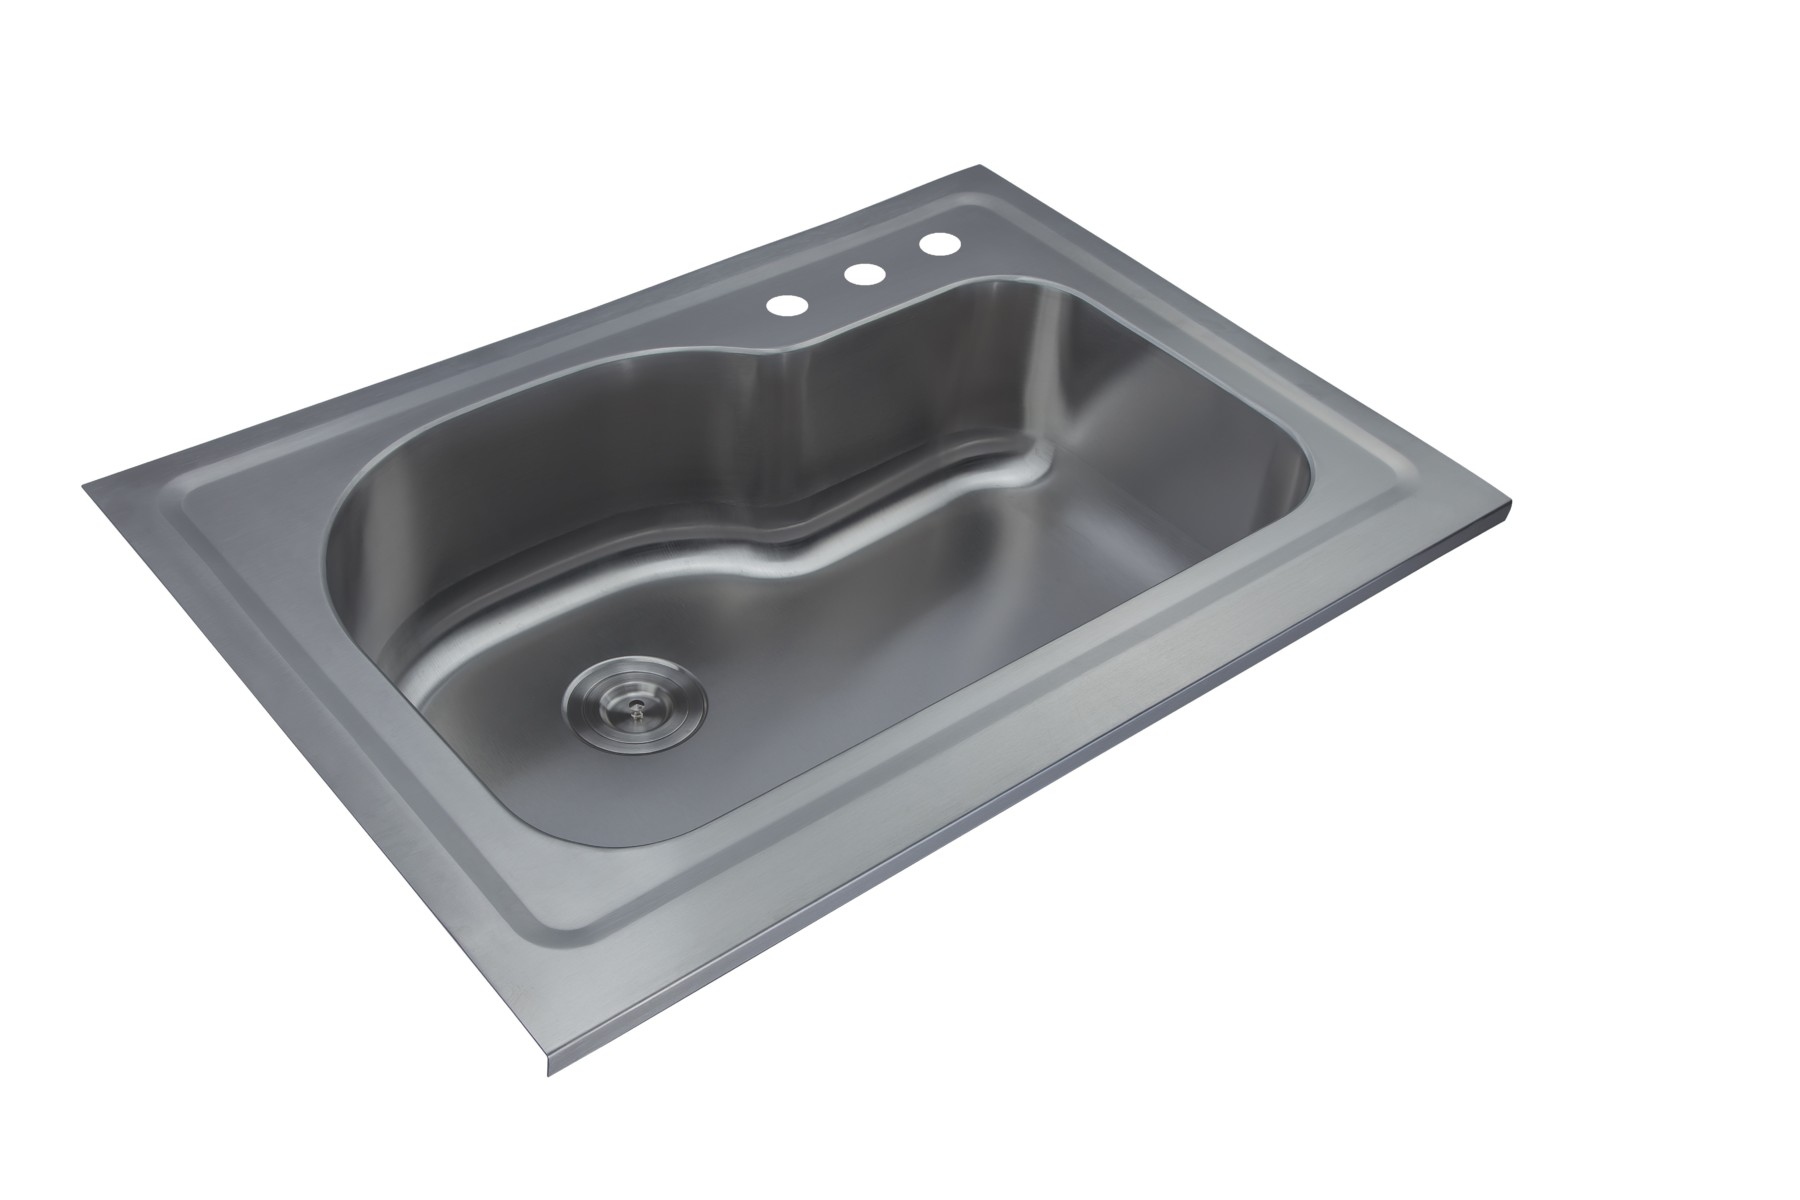 As143 35 6 x 25 5 x 18g single bowl slide in for Coloured kitchen sinks